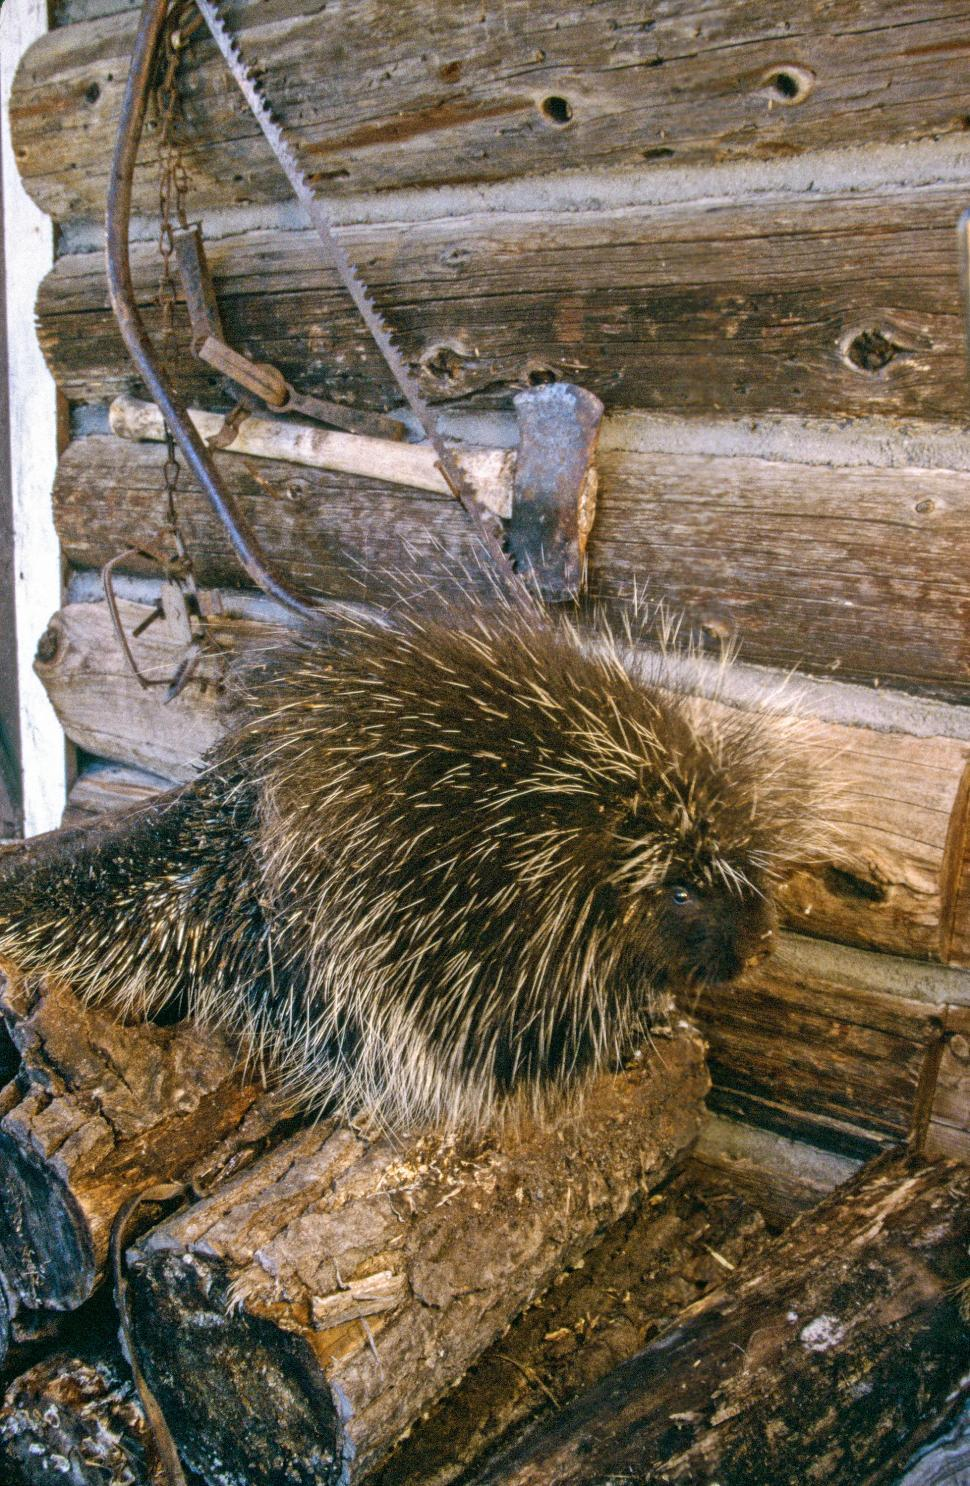 Download Free Stock HD Photo of Crested porcupine Online